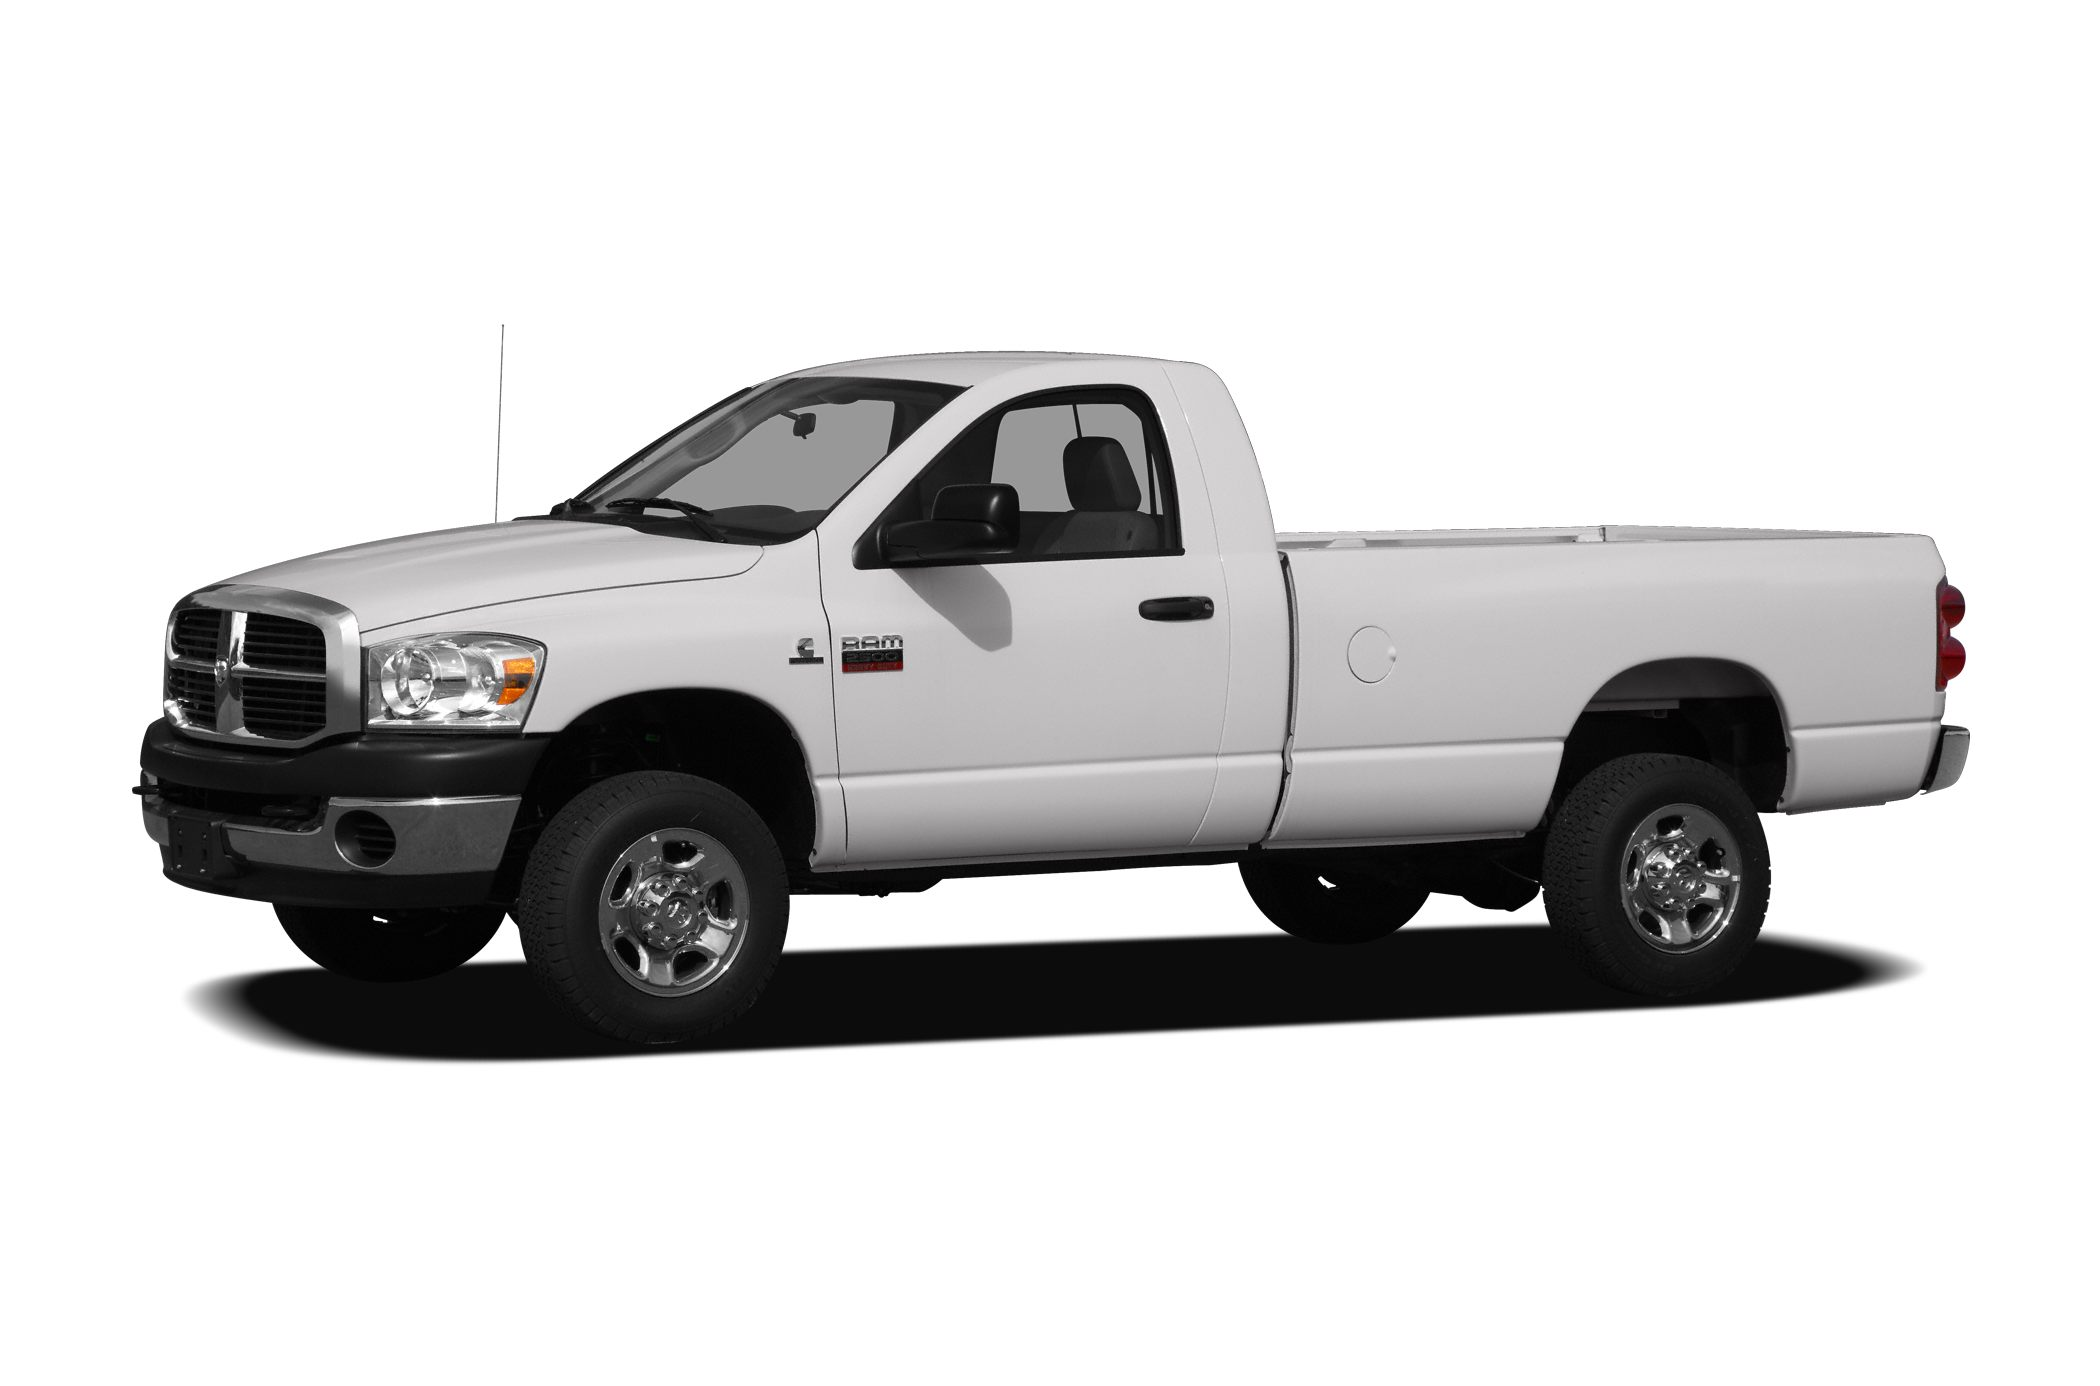 2008 Dodge Ram 2500 ST Crew Cab Pickup for sale in Canon City for $24,995 with 136,595 miles